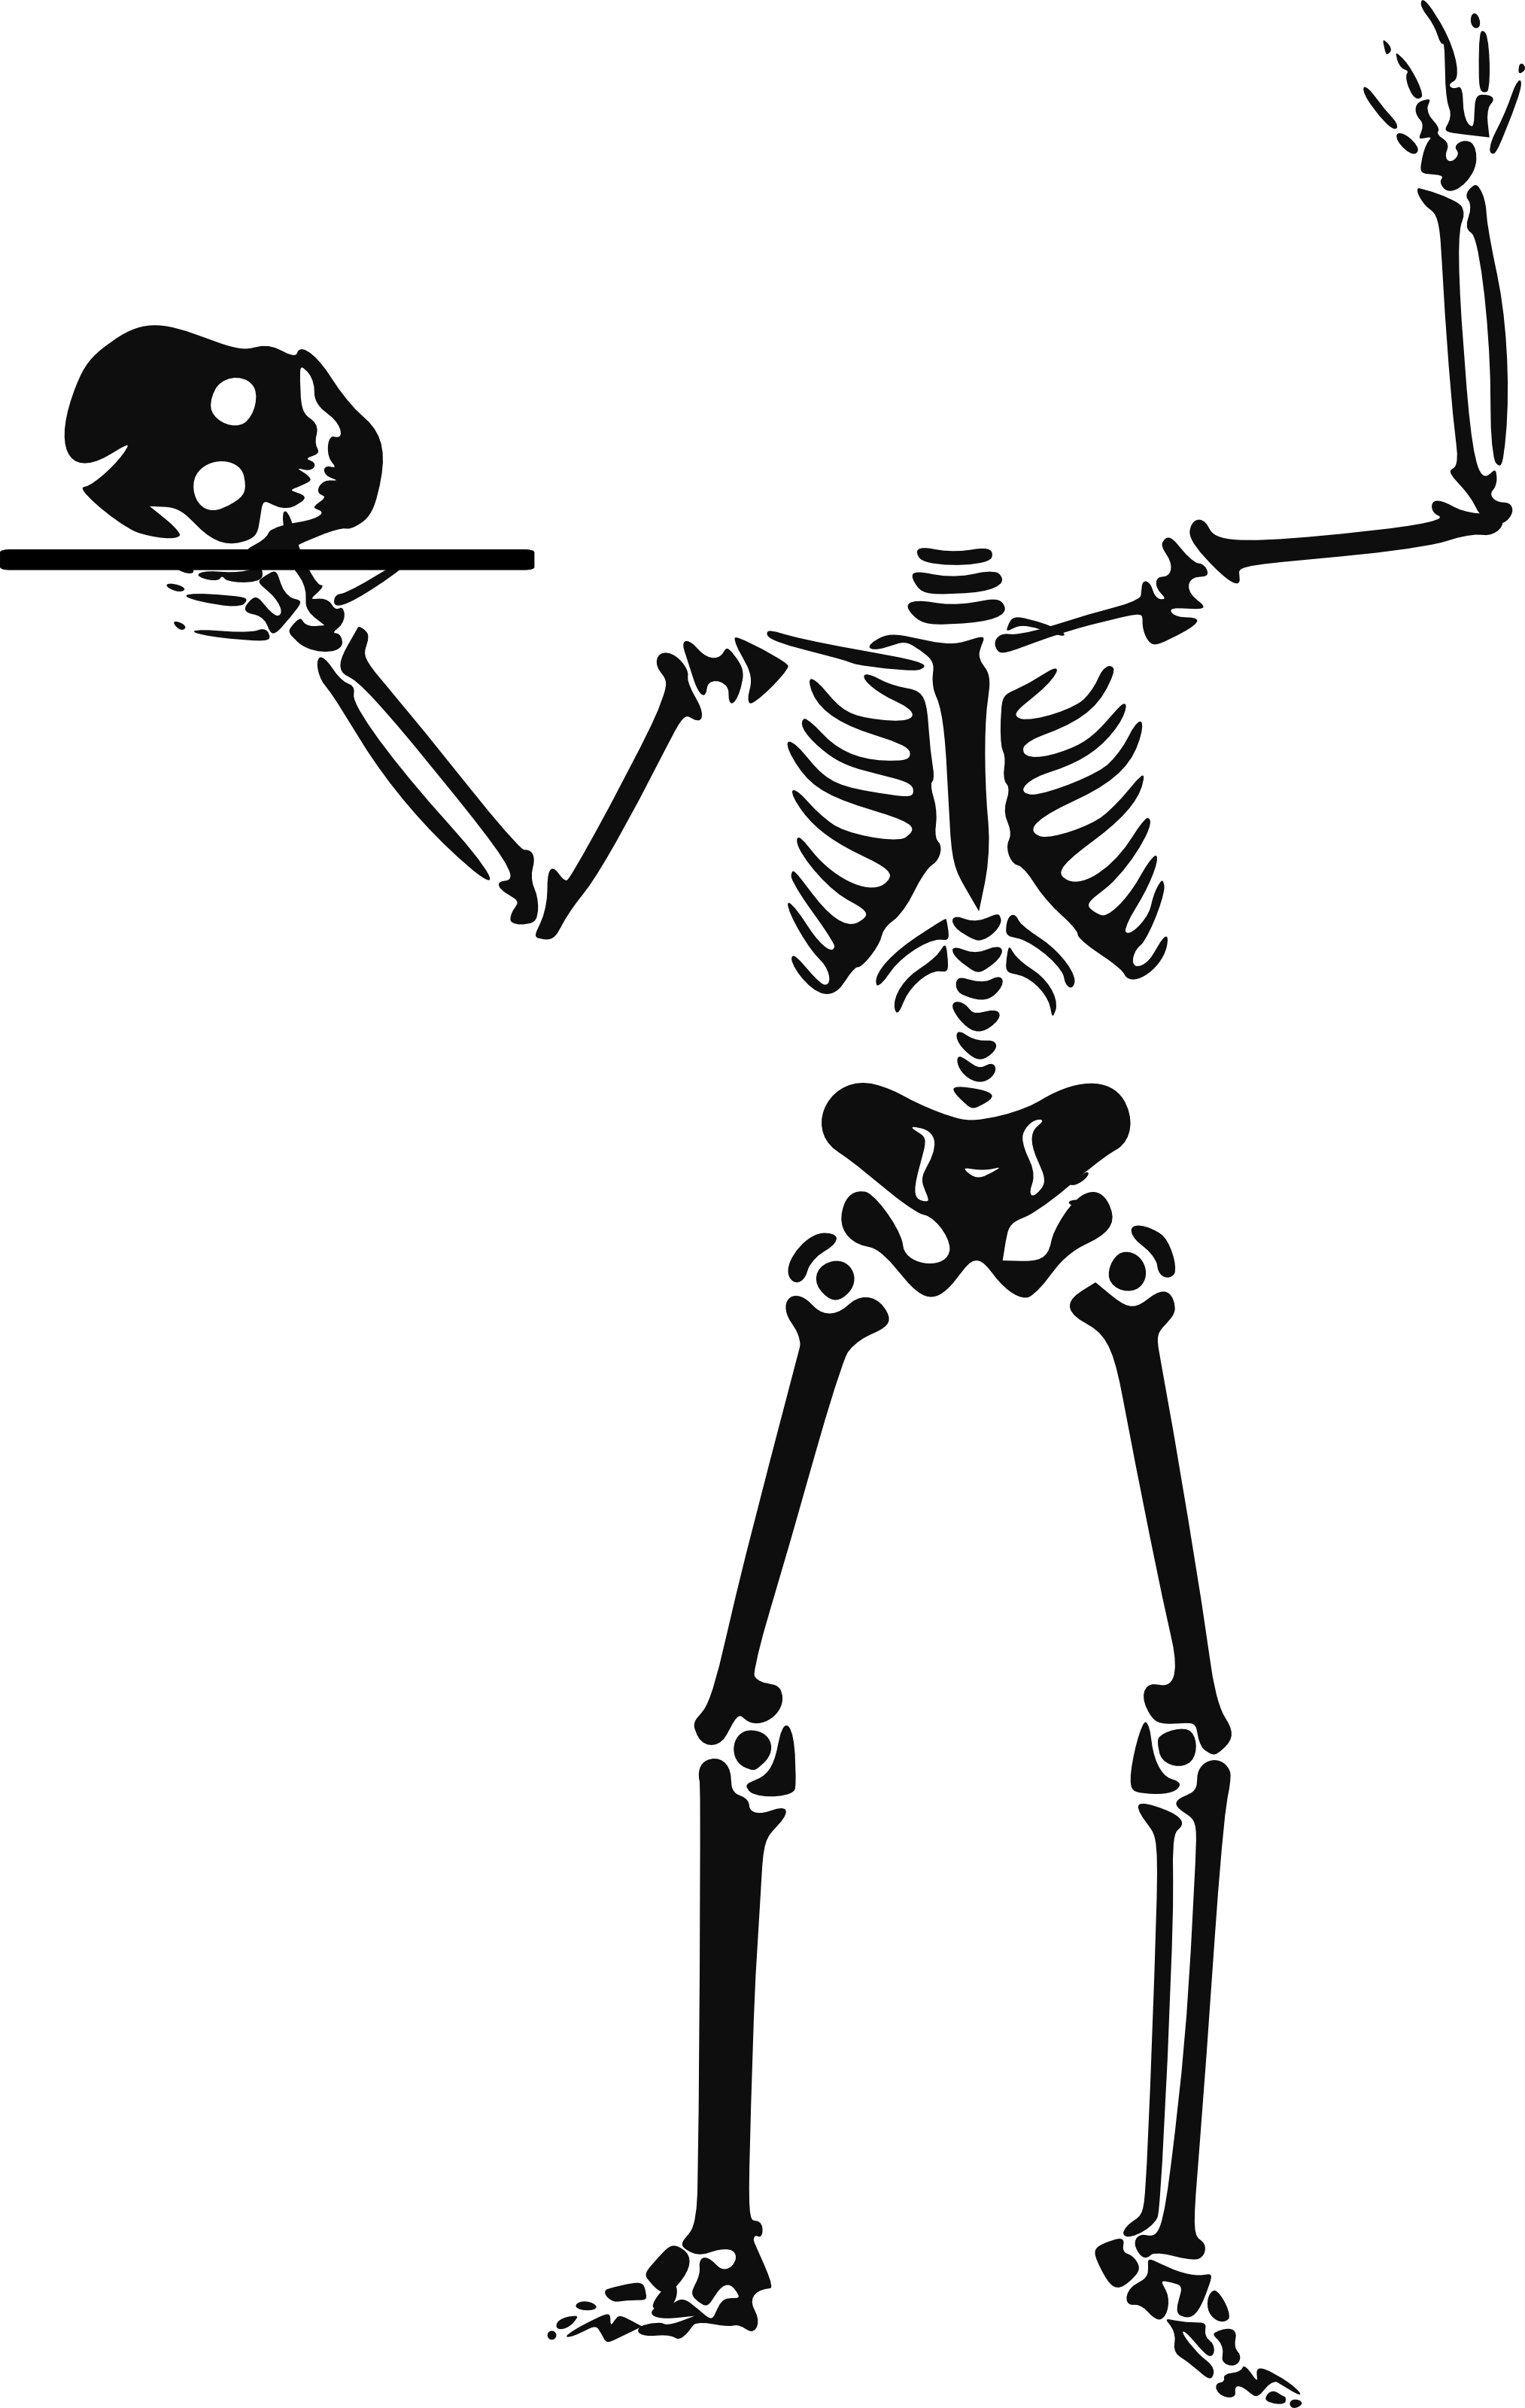 Skeleton clipart medieval. Free cliparts download clip